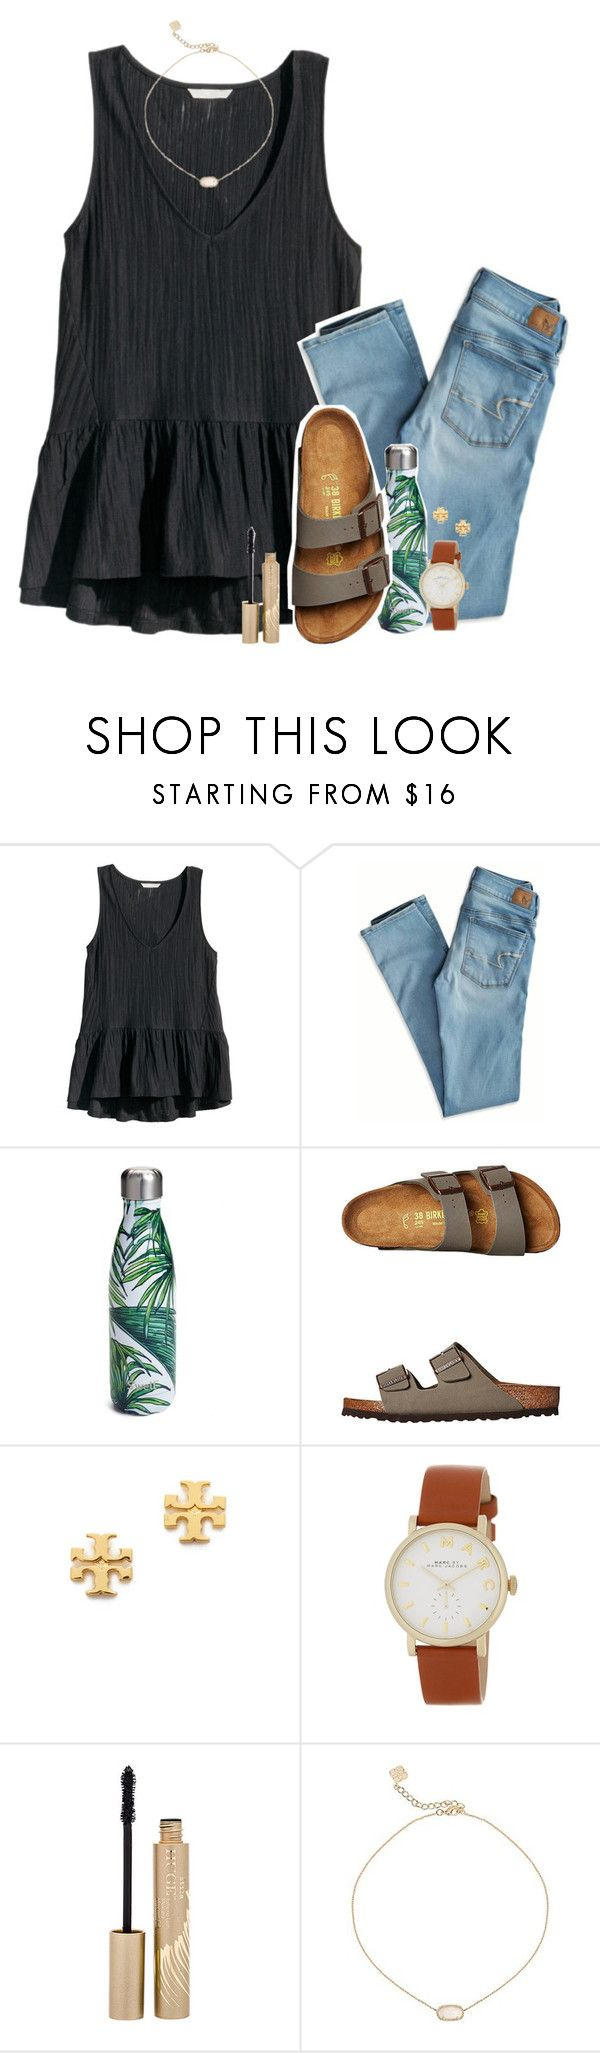 """""""let's dance~"""" by the-preps ❤ liked on Polyvore featuring H&M, American Eagle Outfitters, S'well, Birkenstock, Tory Burch, Marc Jacobs, Stila and Kendra Scott"""